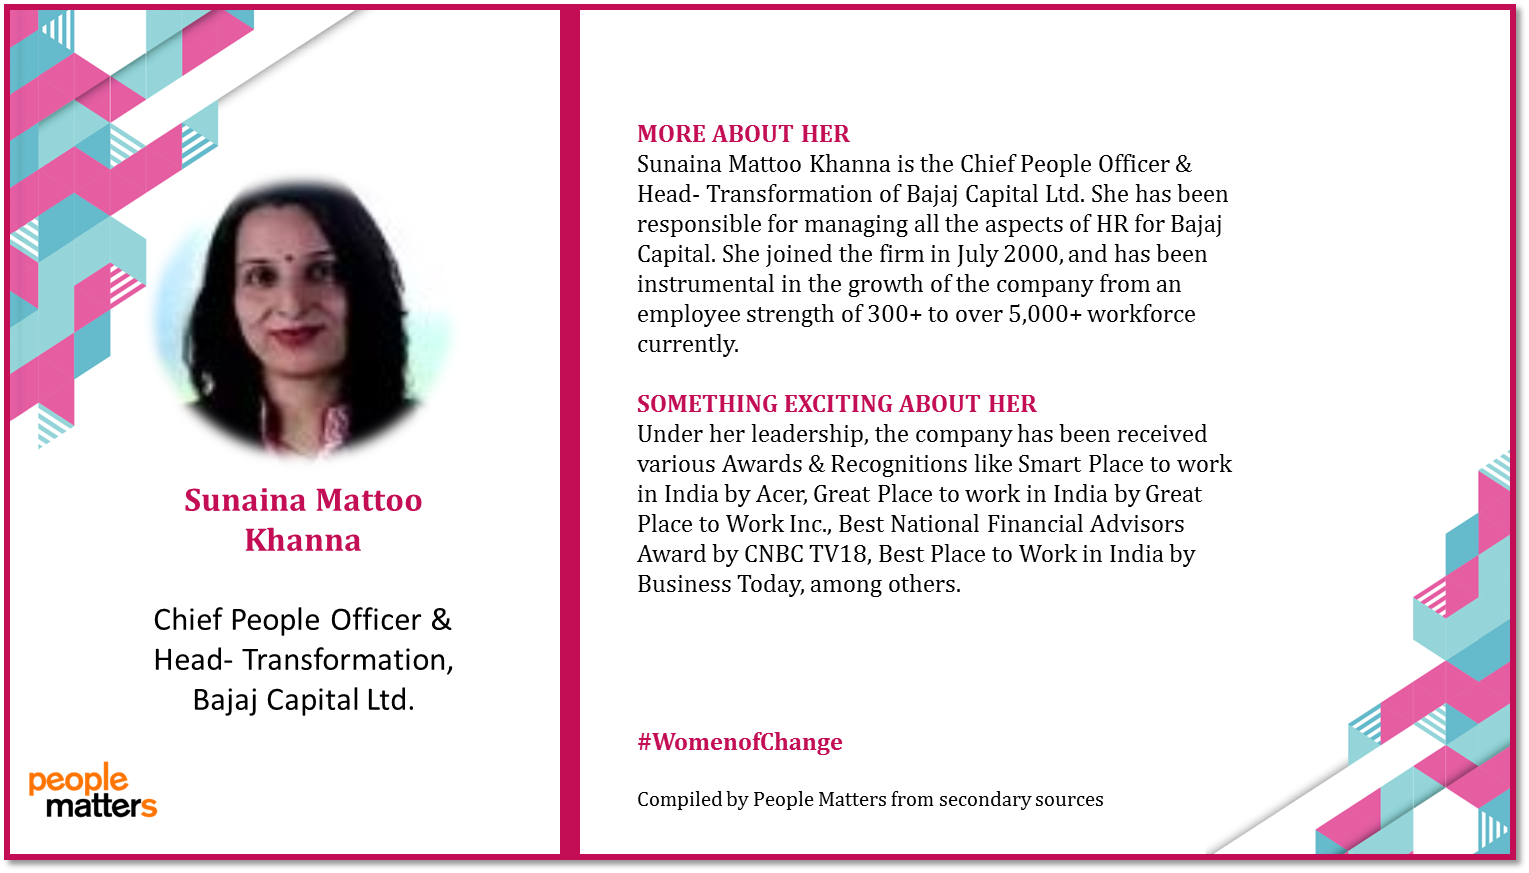 Sunaina_Mattoo_Khanna_Bajaj_Capital_Chief_People_Officer_Head_HR_Transformation